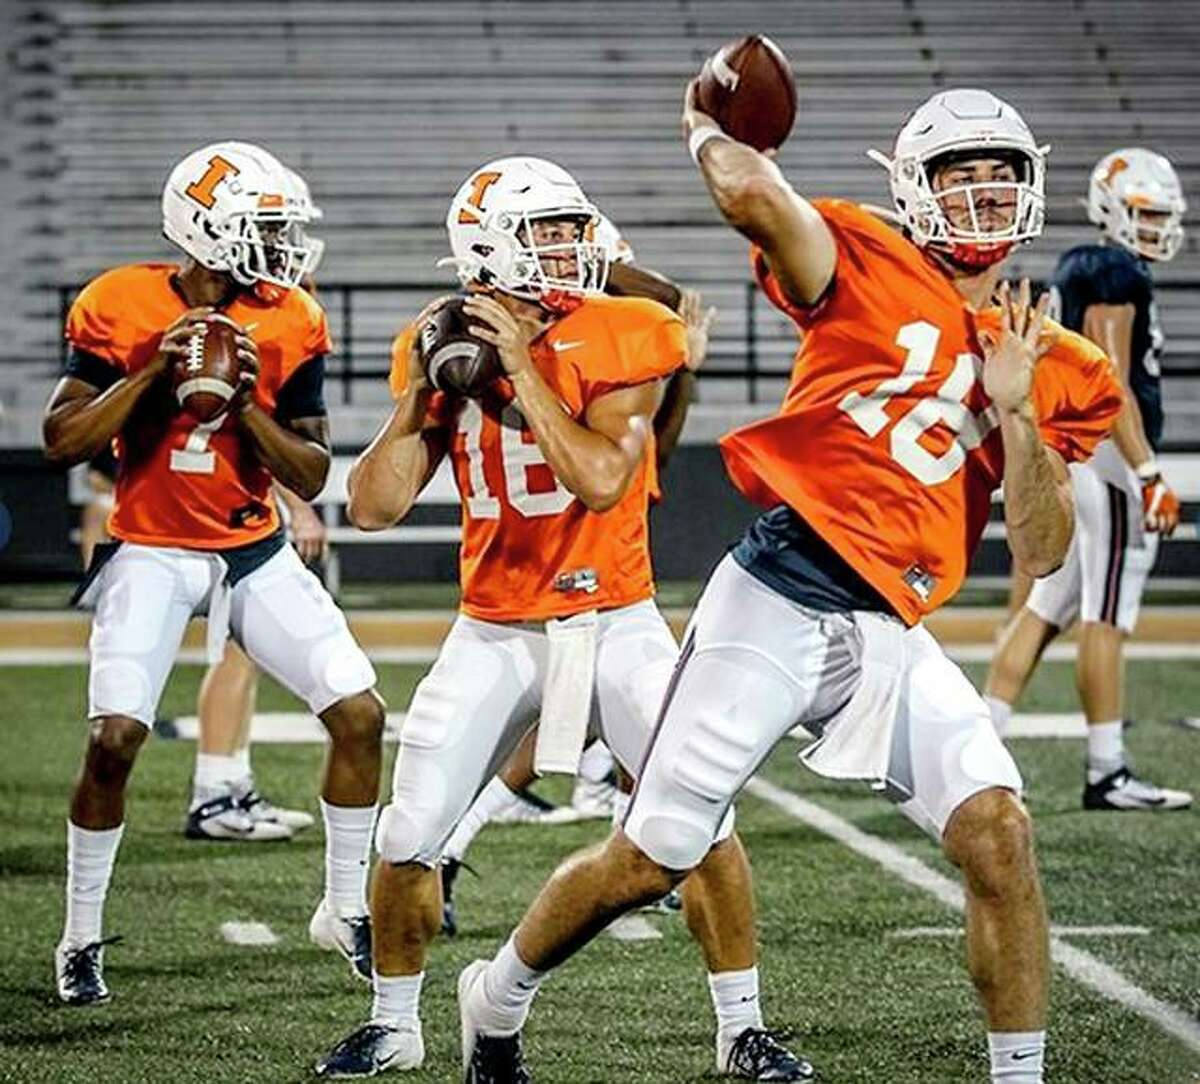 Illinois quarterback Brandon Peters (18) delivers a pass during a practice session at Memorial Stadium. Peters, a graduate transfer from Michigan, will start Saturday against Akron in the season opener. Also pictured are quarterbacks Cam Miller, center, and Isaiah Williams.